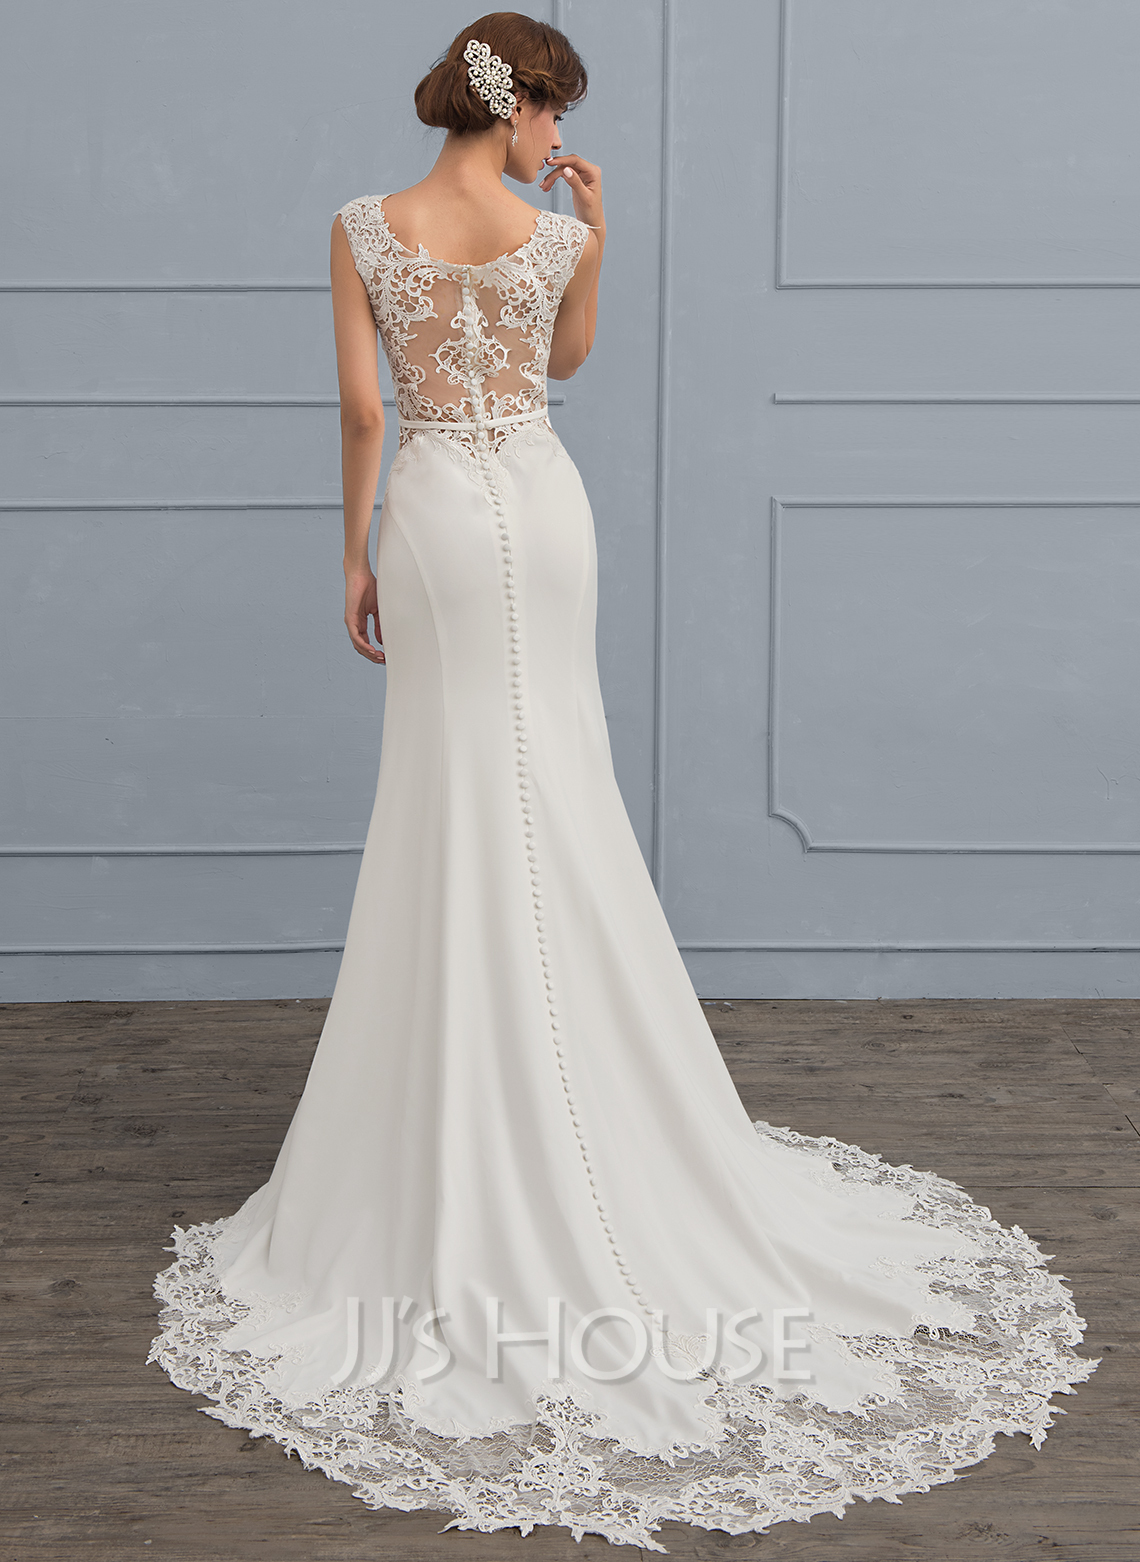 b78e8804686f Trumpet/Mermaid Scoop Neck Court Train Stretch Crepe Wedding Dress. Loading  zoom